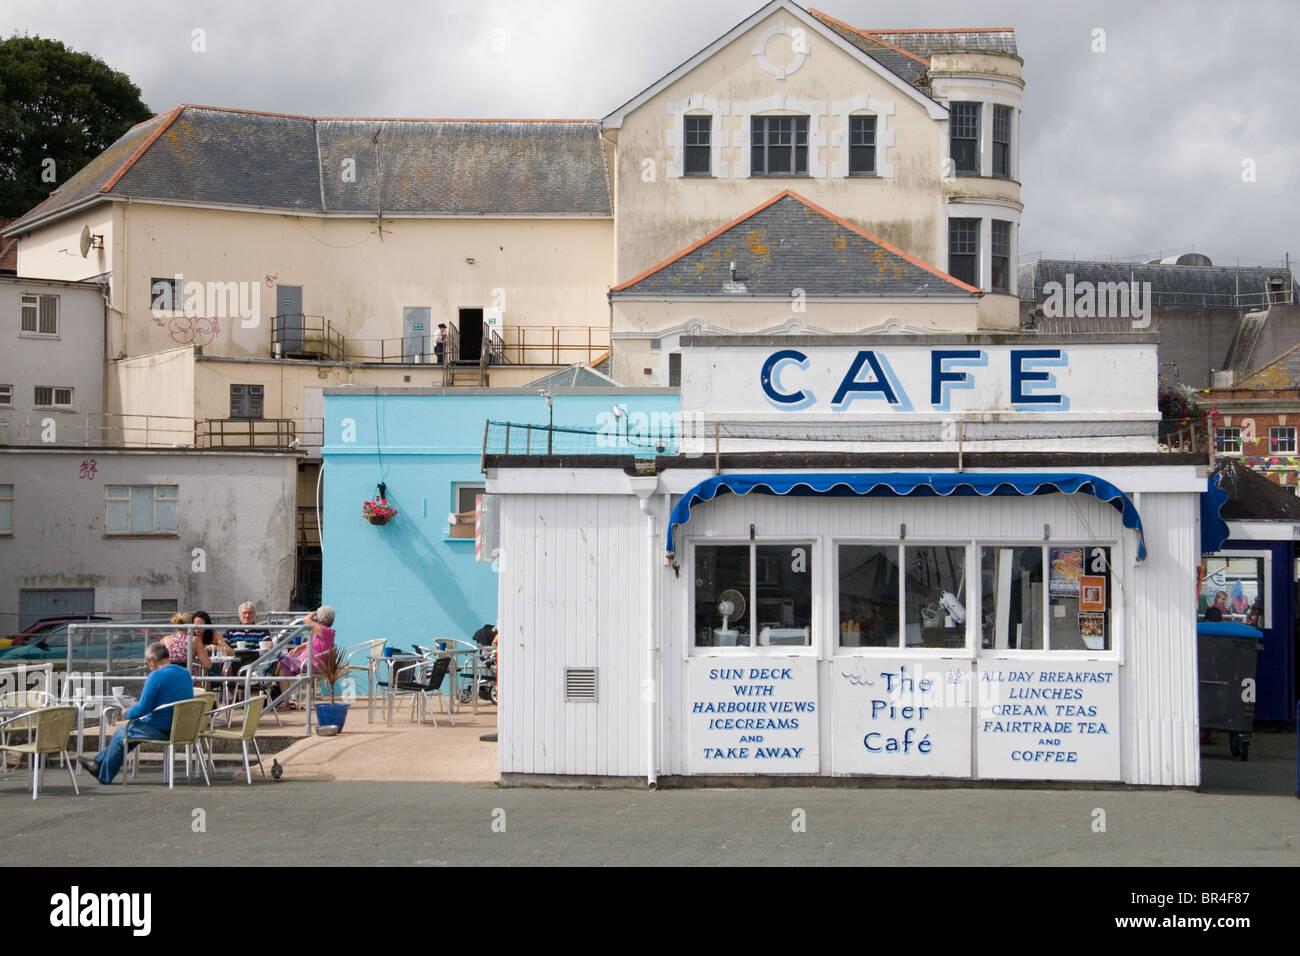 A café on the pier at Falmouth, Cornwall - Stock Image